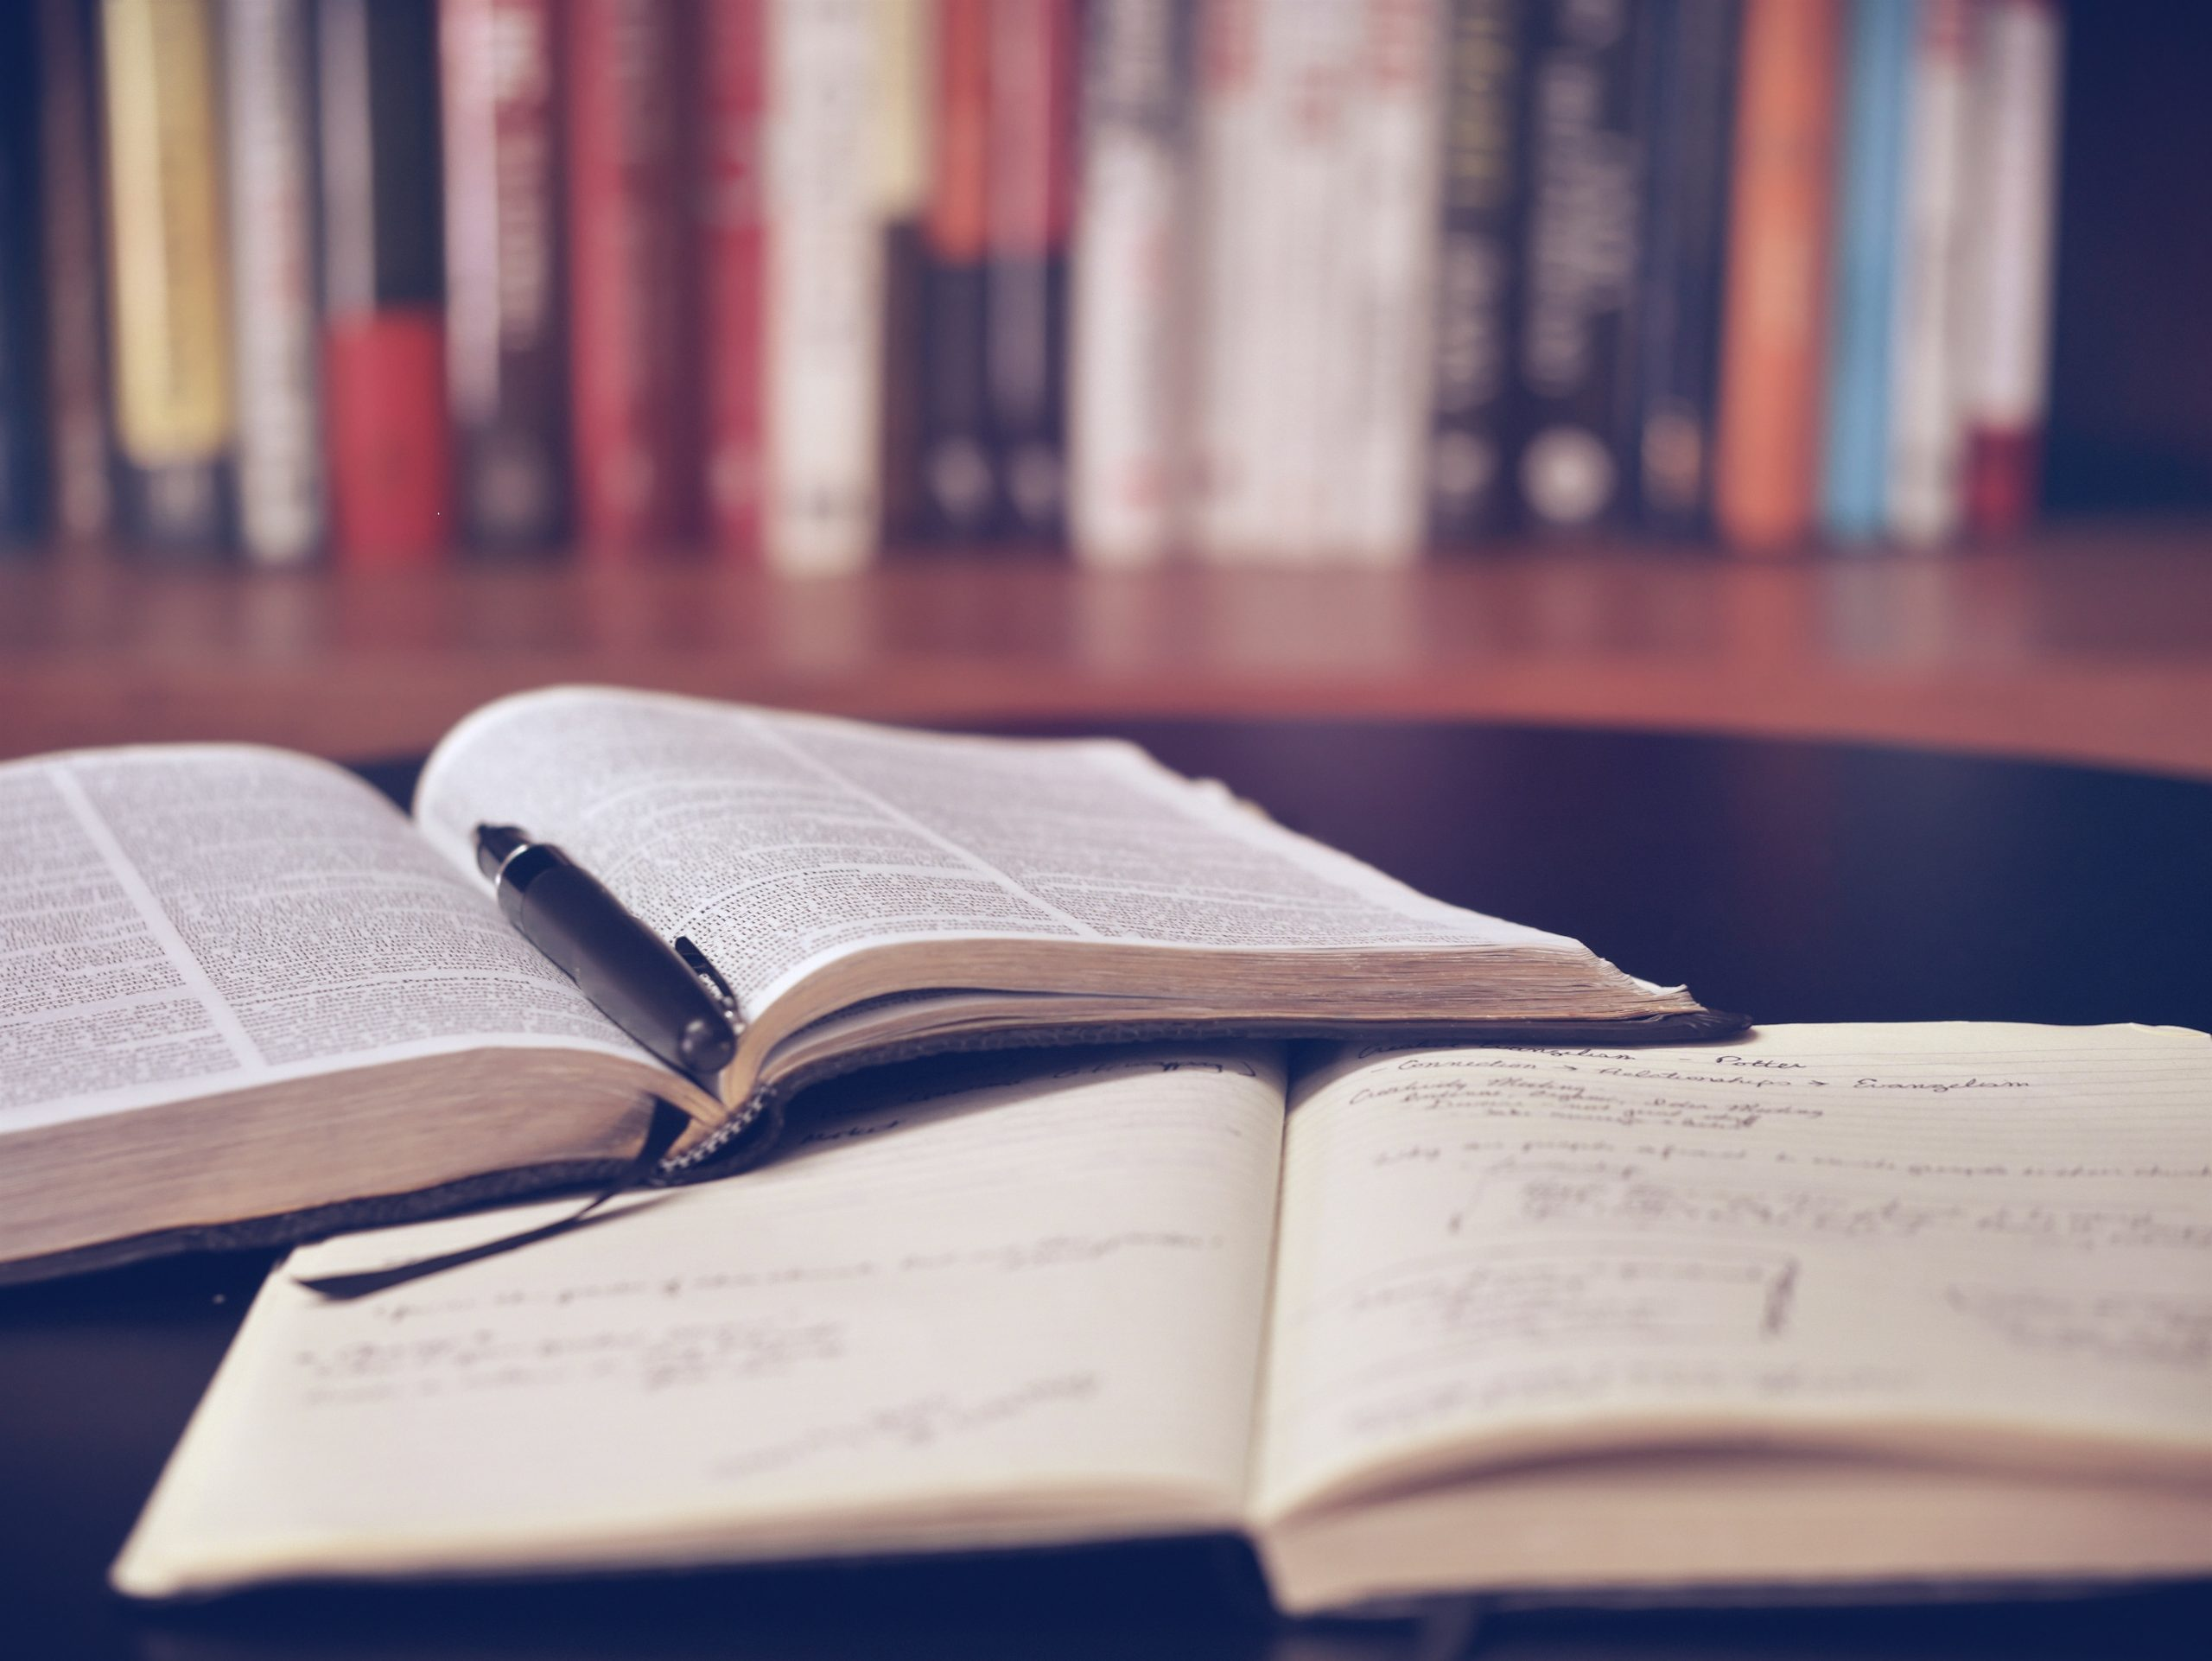 Why you should study apologetics